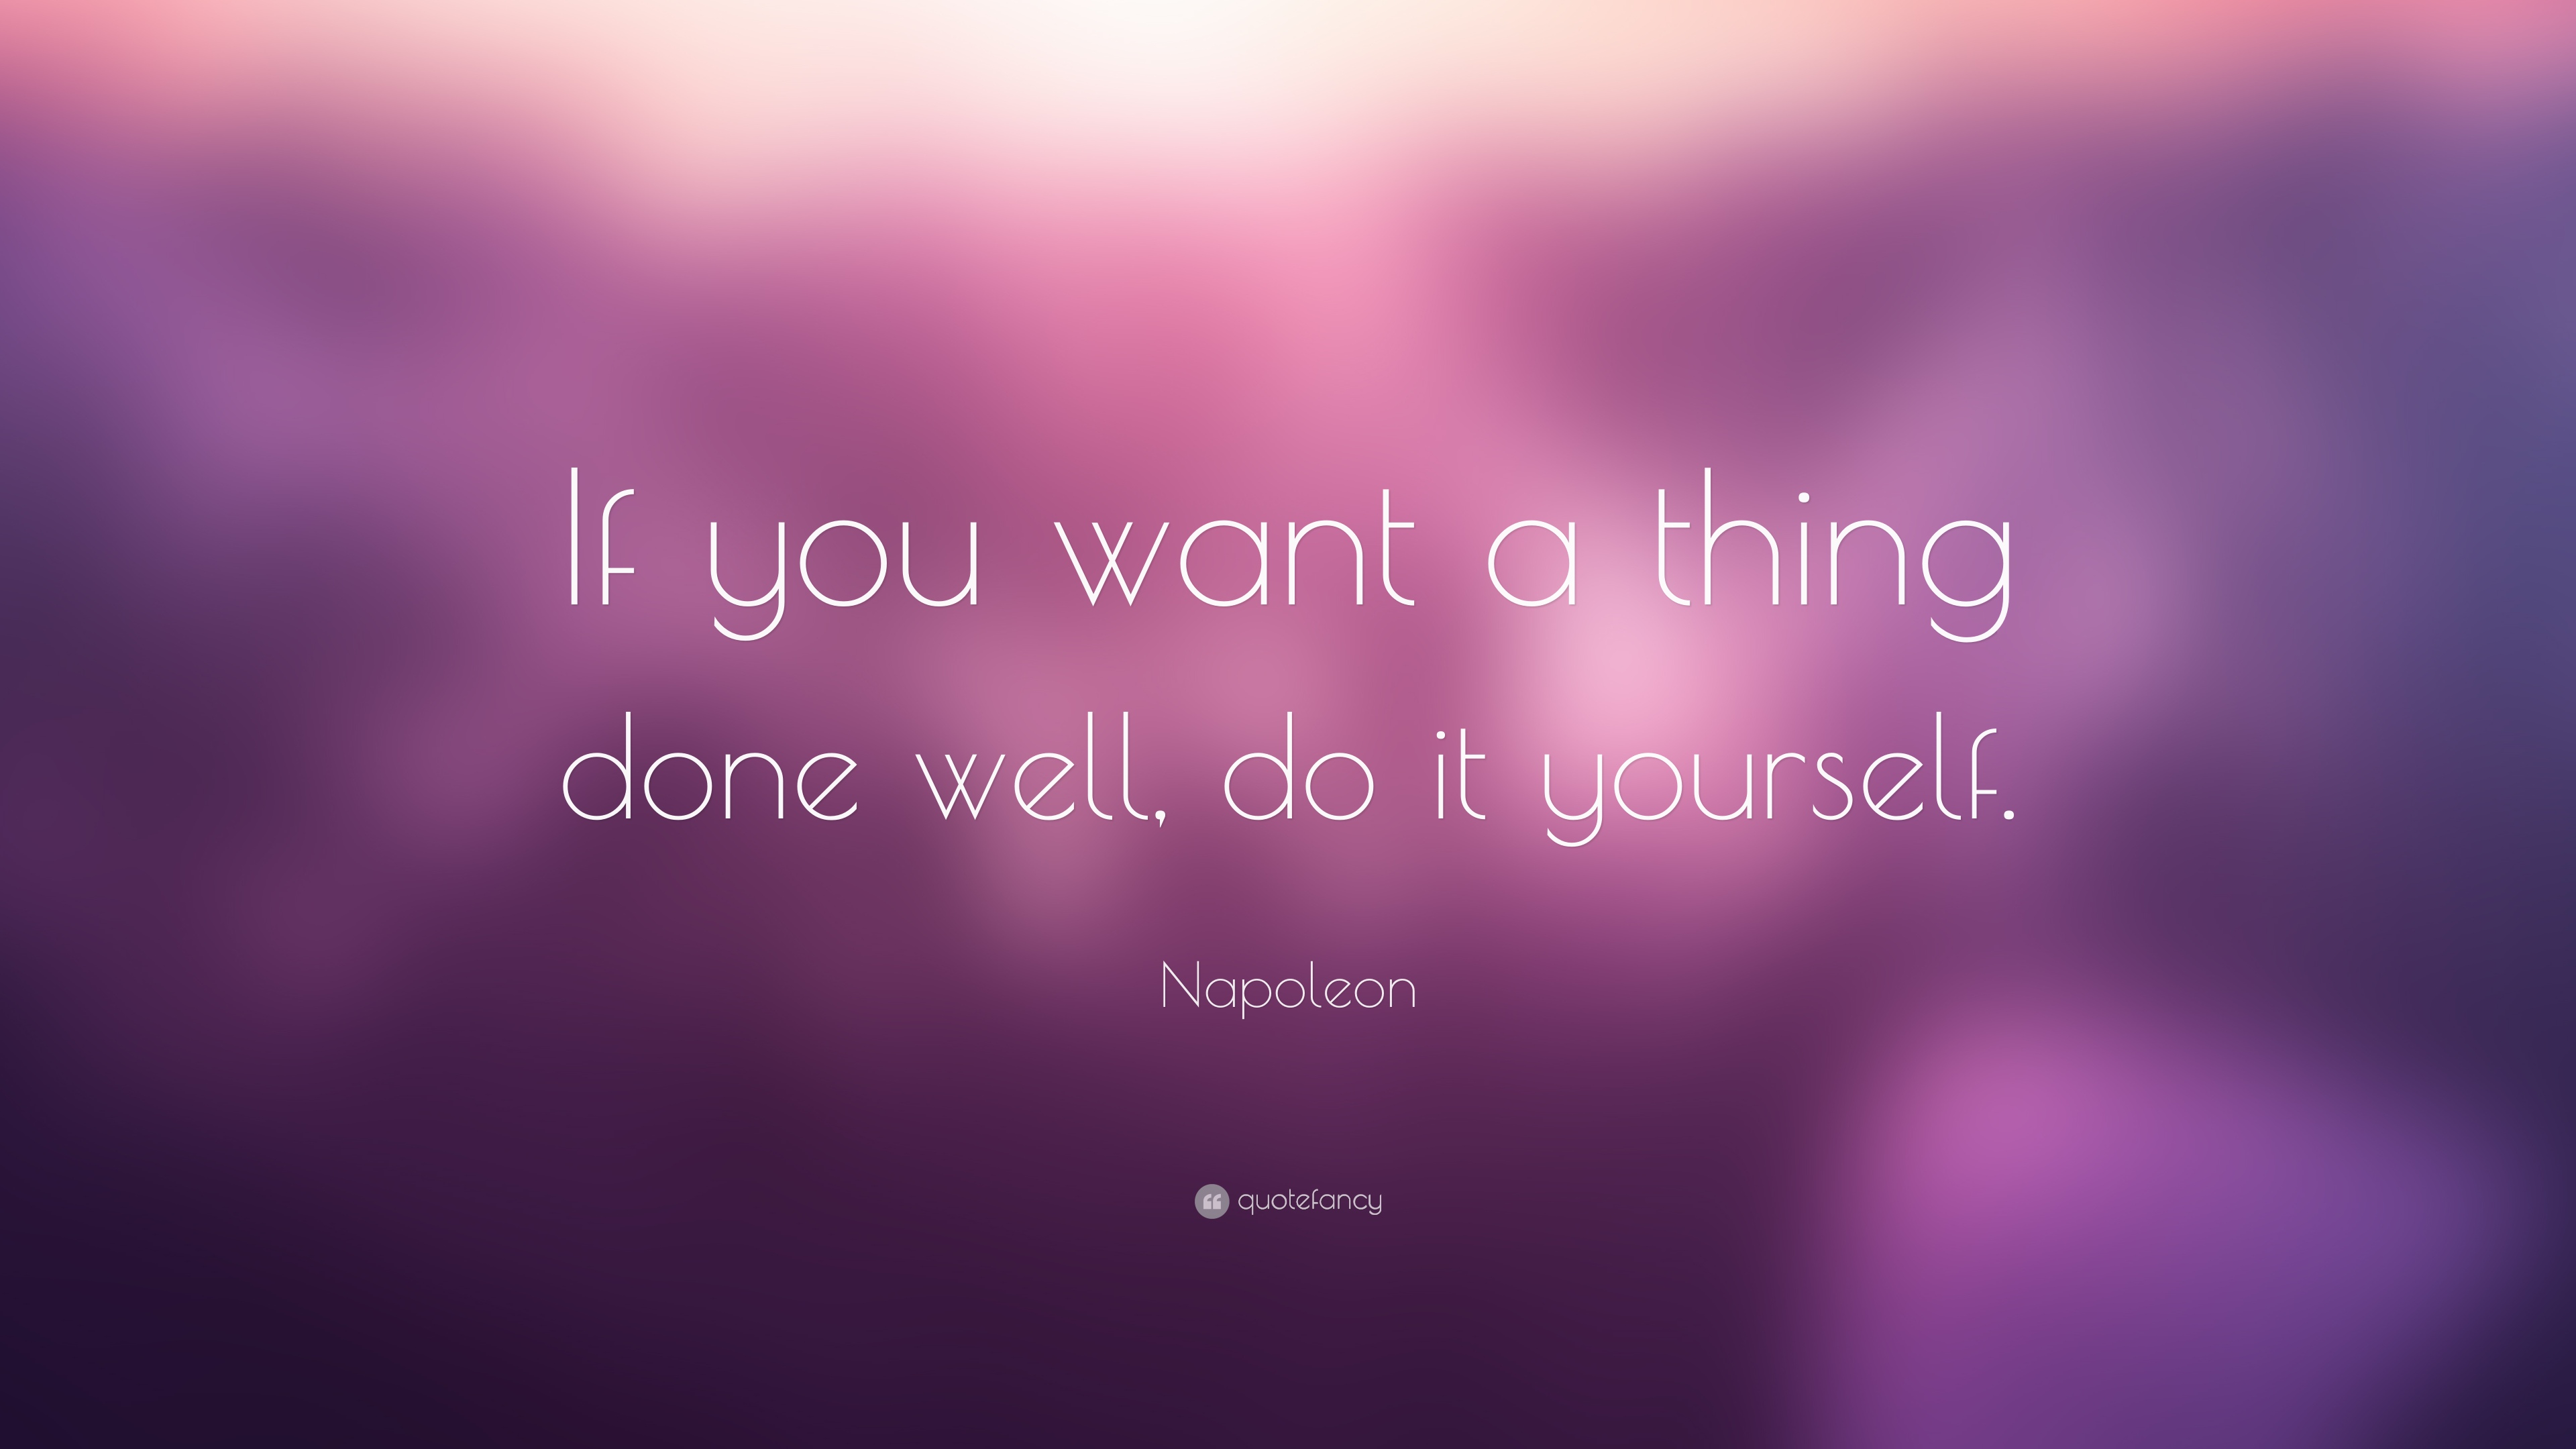 Napoleon quote if you want a thing done well do it yourself 15 napoleon quote if you want a thing done well do it yourself solutioingenieria Images